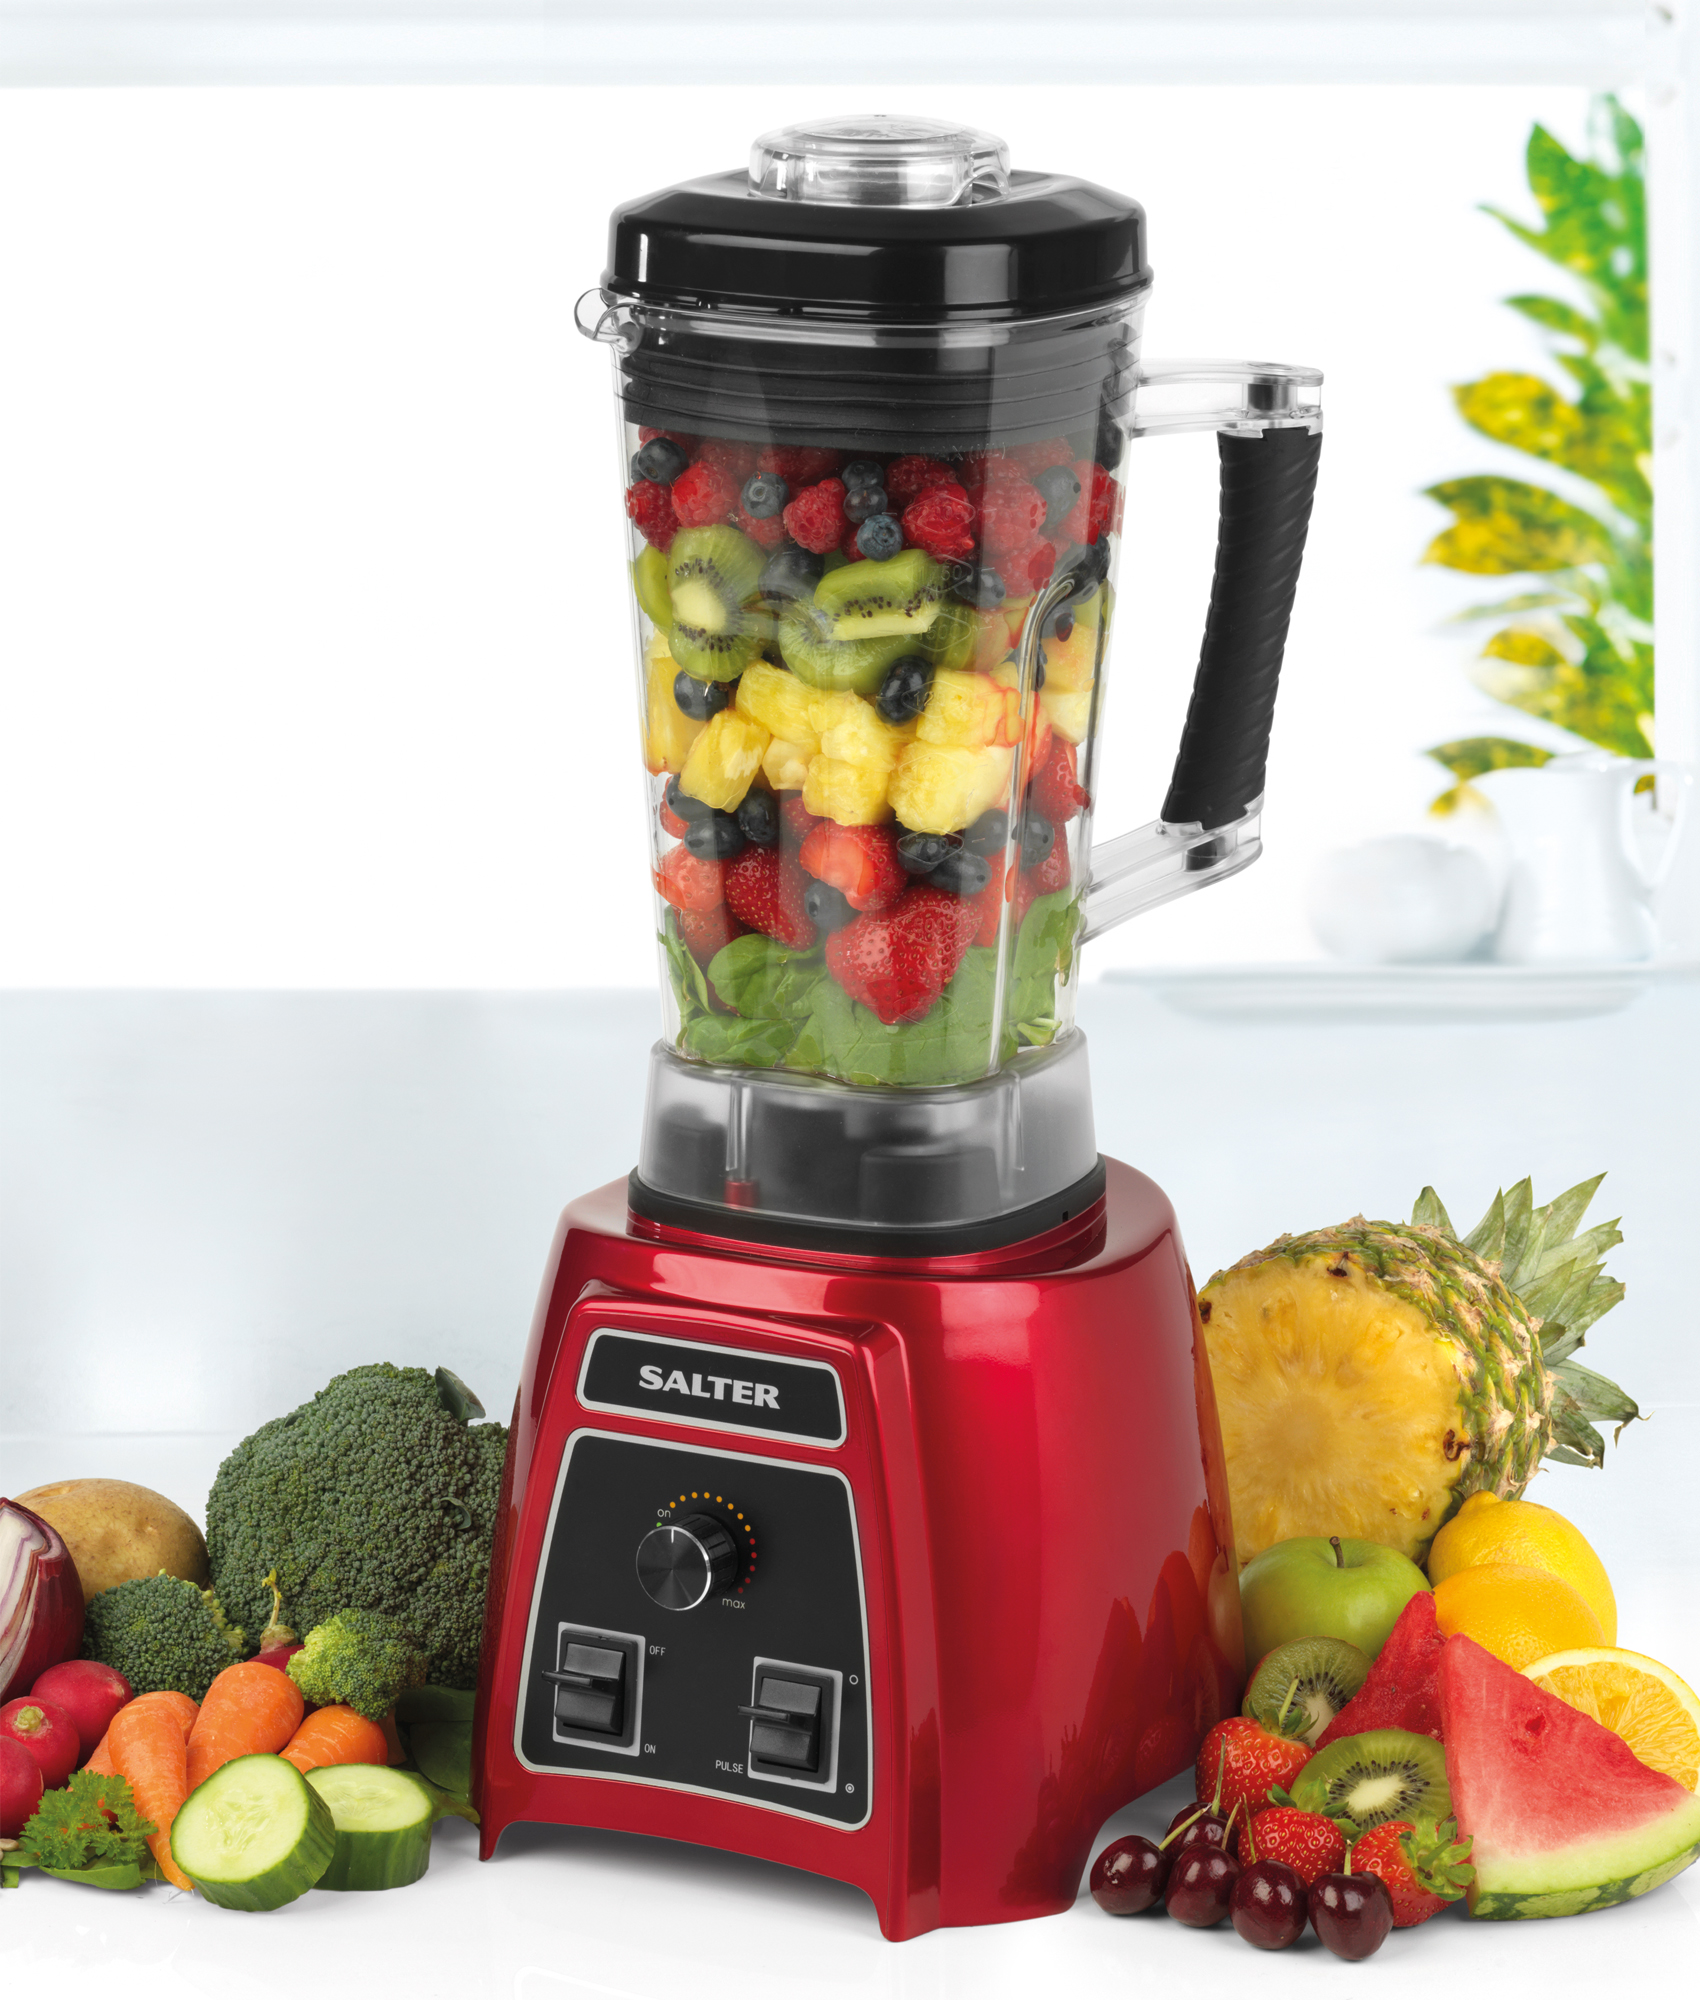 salter ek2154 blenderpro smoothie maker blender 1500 w red small kitchen appliances. Black Bedroom Furniture Sets. Home Design Ideas